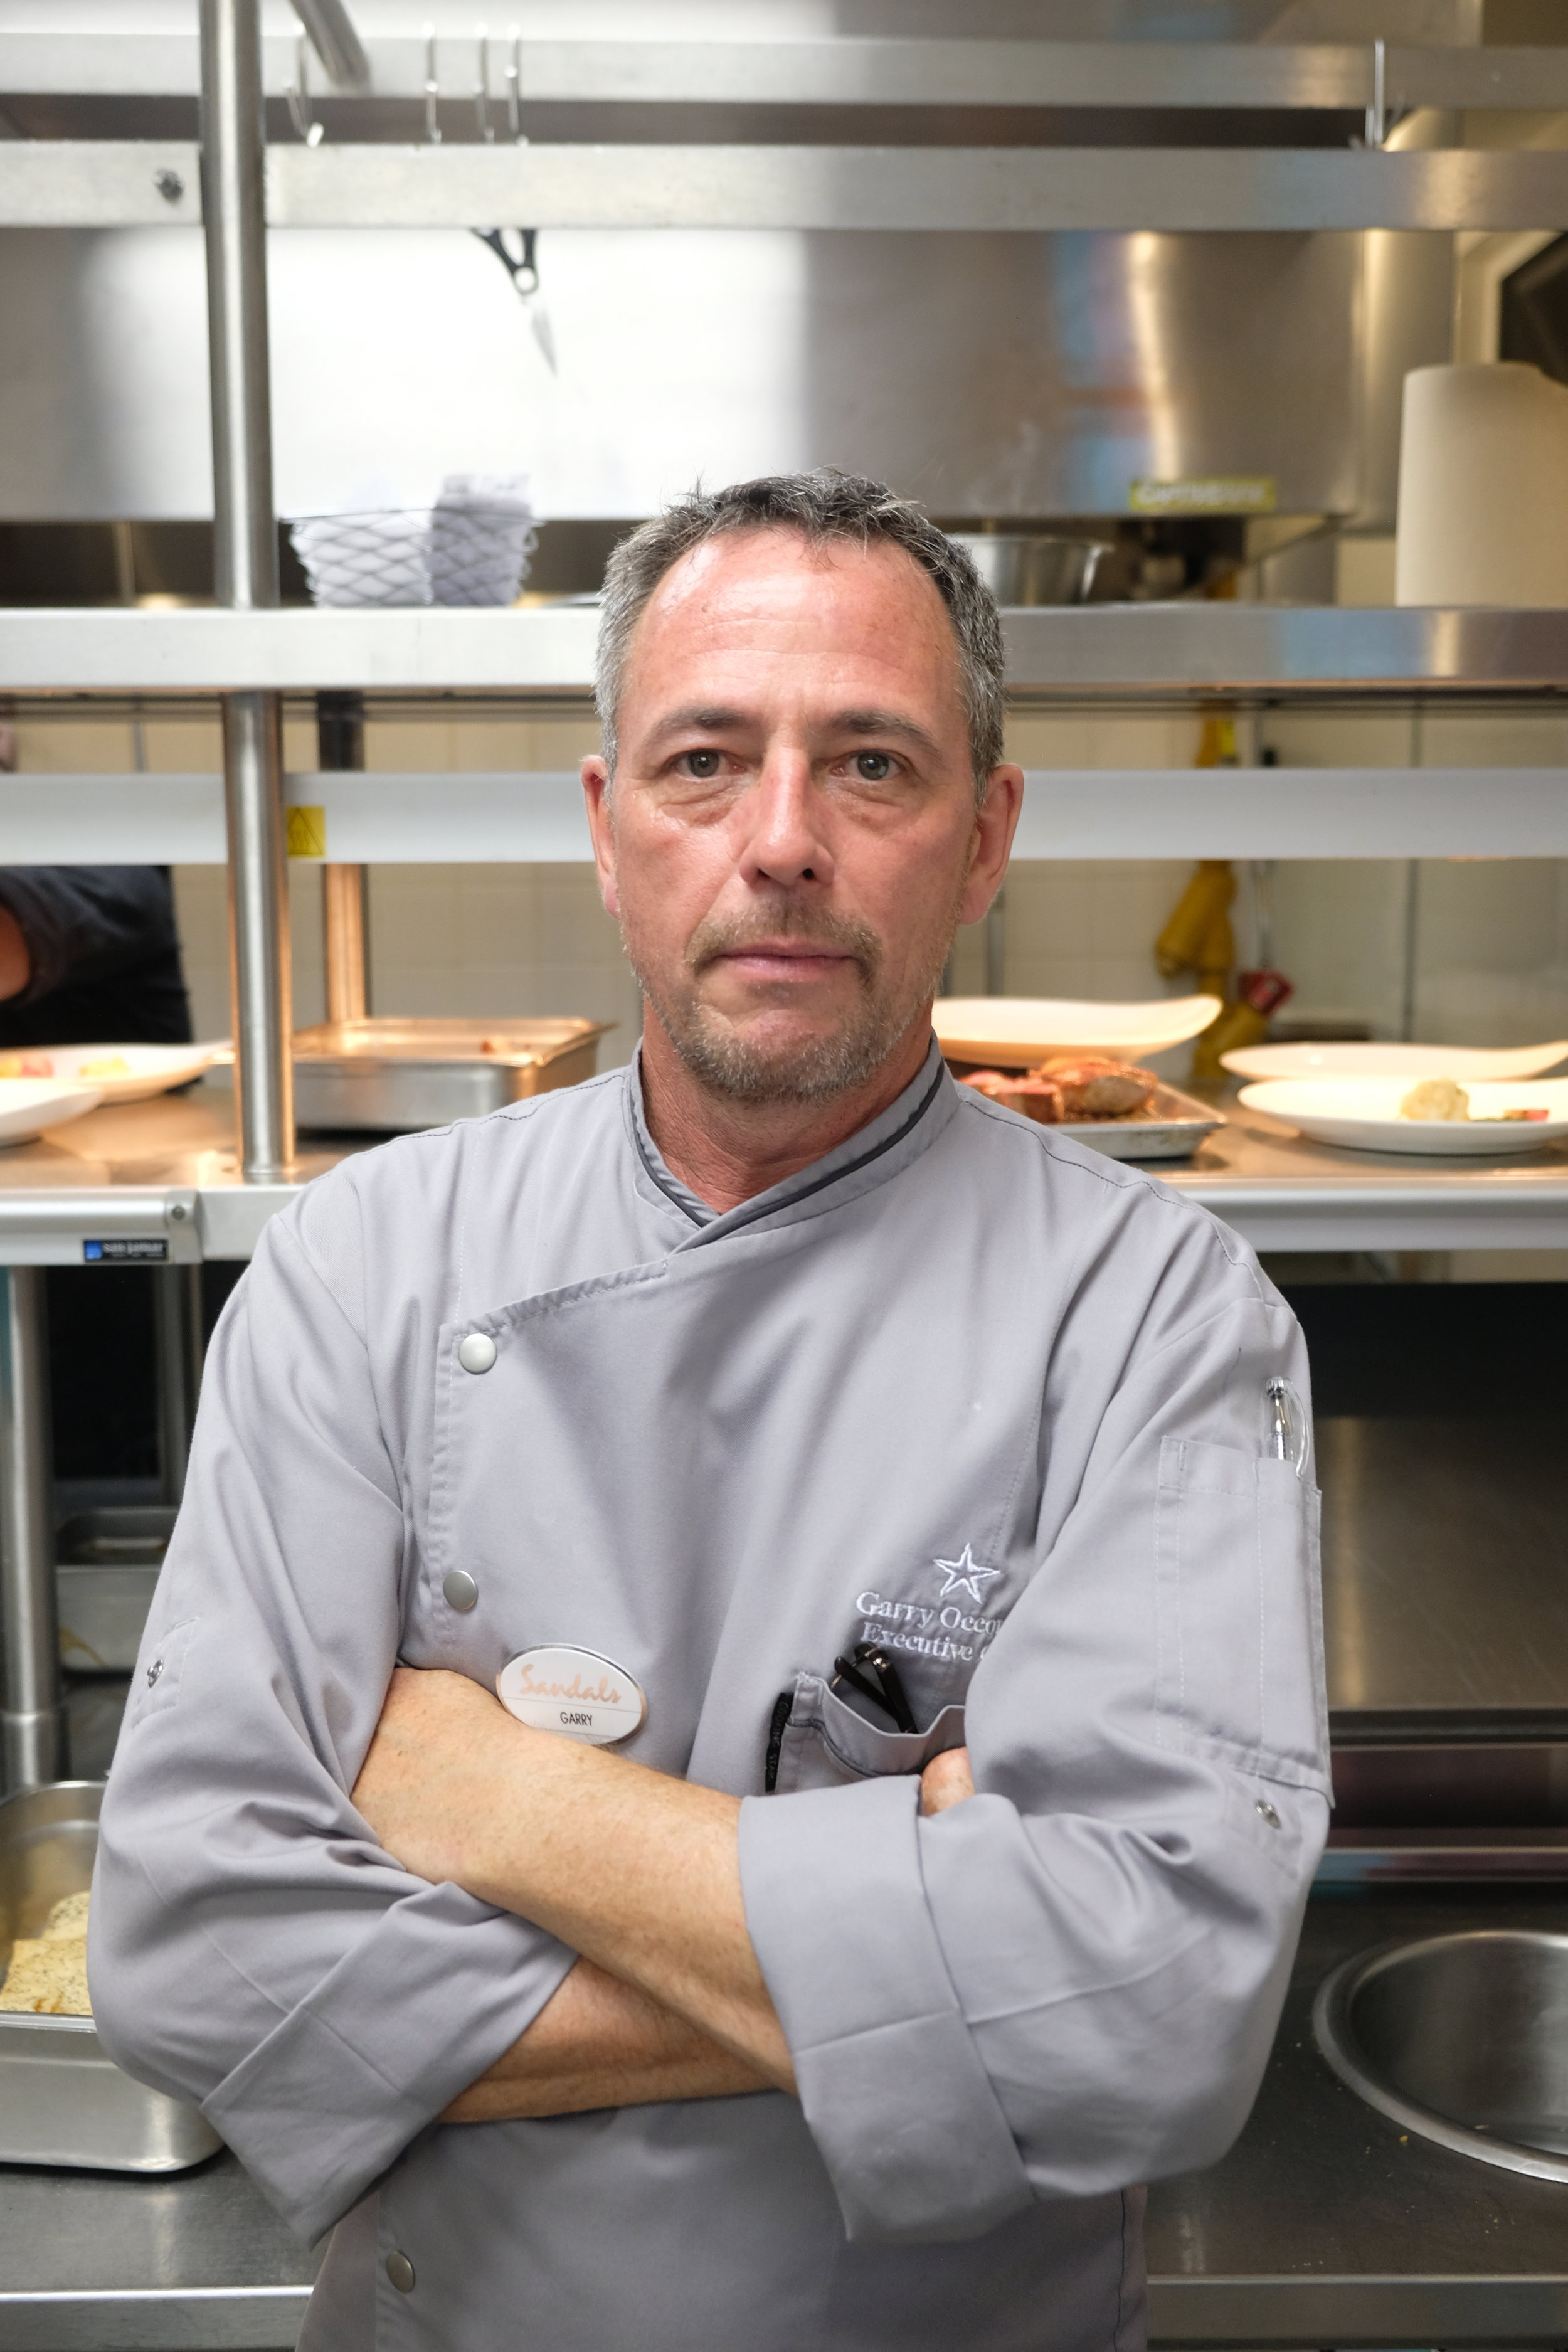 Executive Chef Garry O'Connor